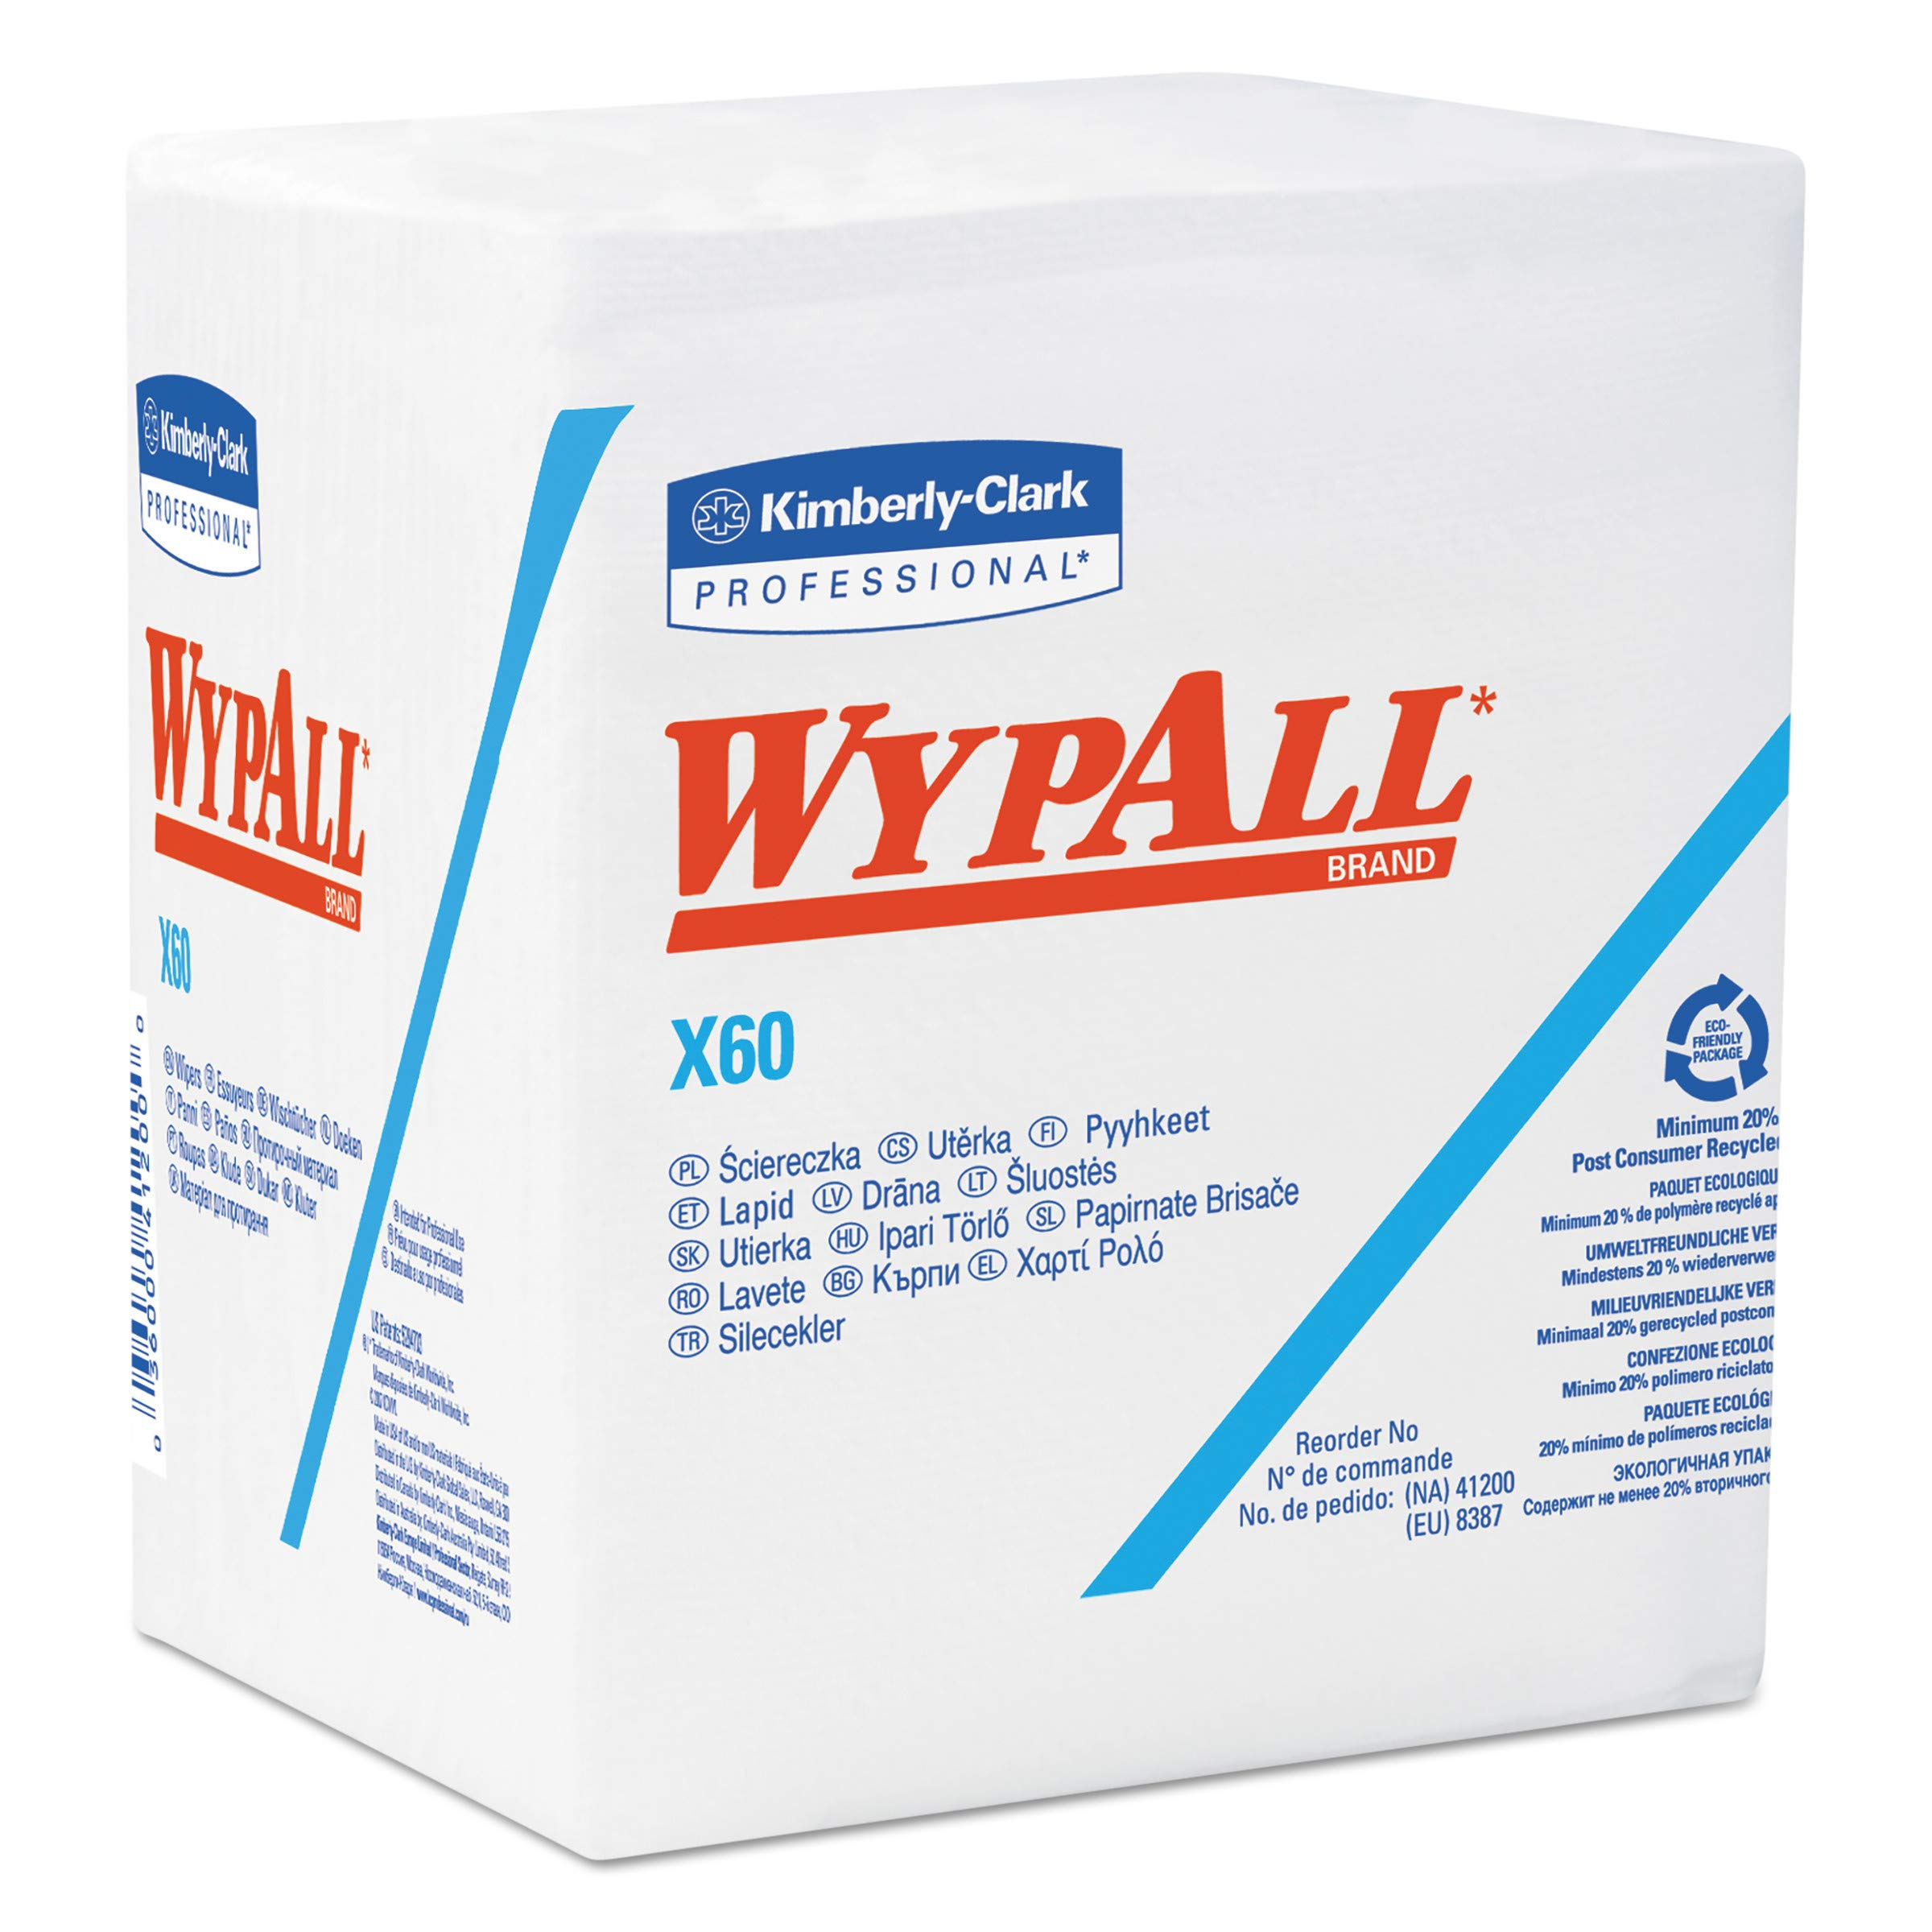 WypAll 34865 X60 Cloths, 1/4 Fold, 12 1/2 x 13, White, 76 per Box (Case of 12 Boxes) by Wypall